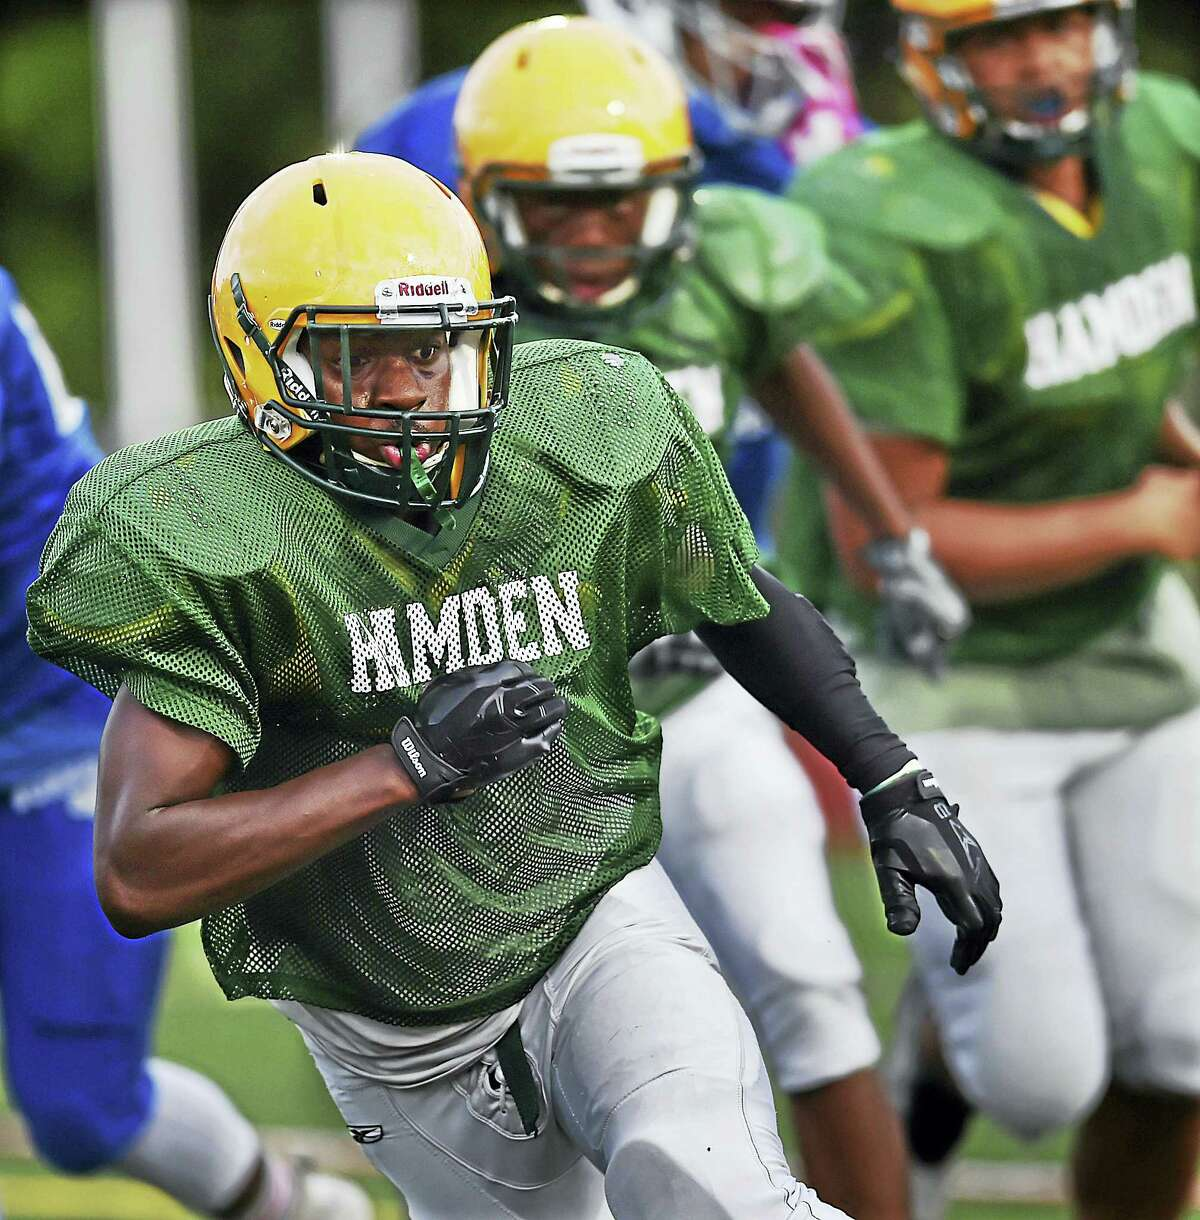 Hamden Head Coach Tommy Dyer on the sidelines against Bunnell in a pre-season scrimmage, Friday, September 2, 2016, at the Joseph Bruno Field at Hamden High School. The Bulldogs won, 27-6. (Catherine Avalone/New Haven Register)